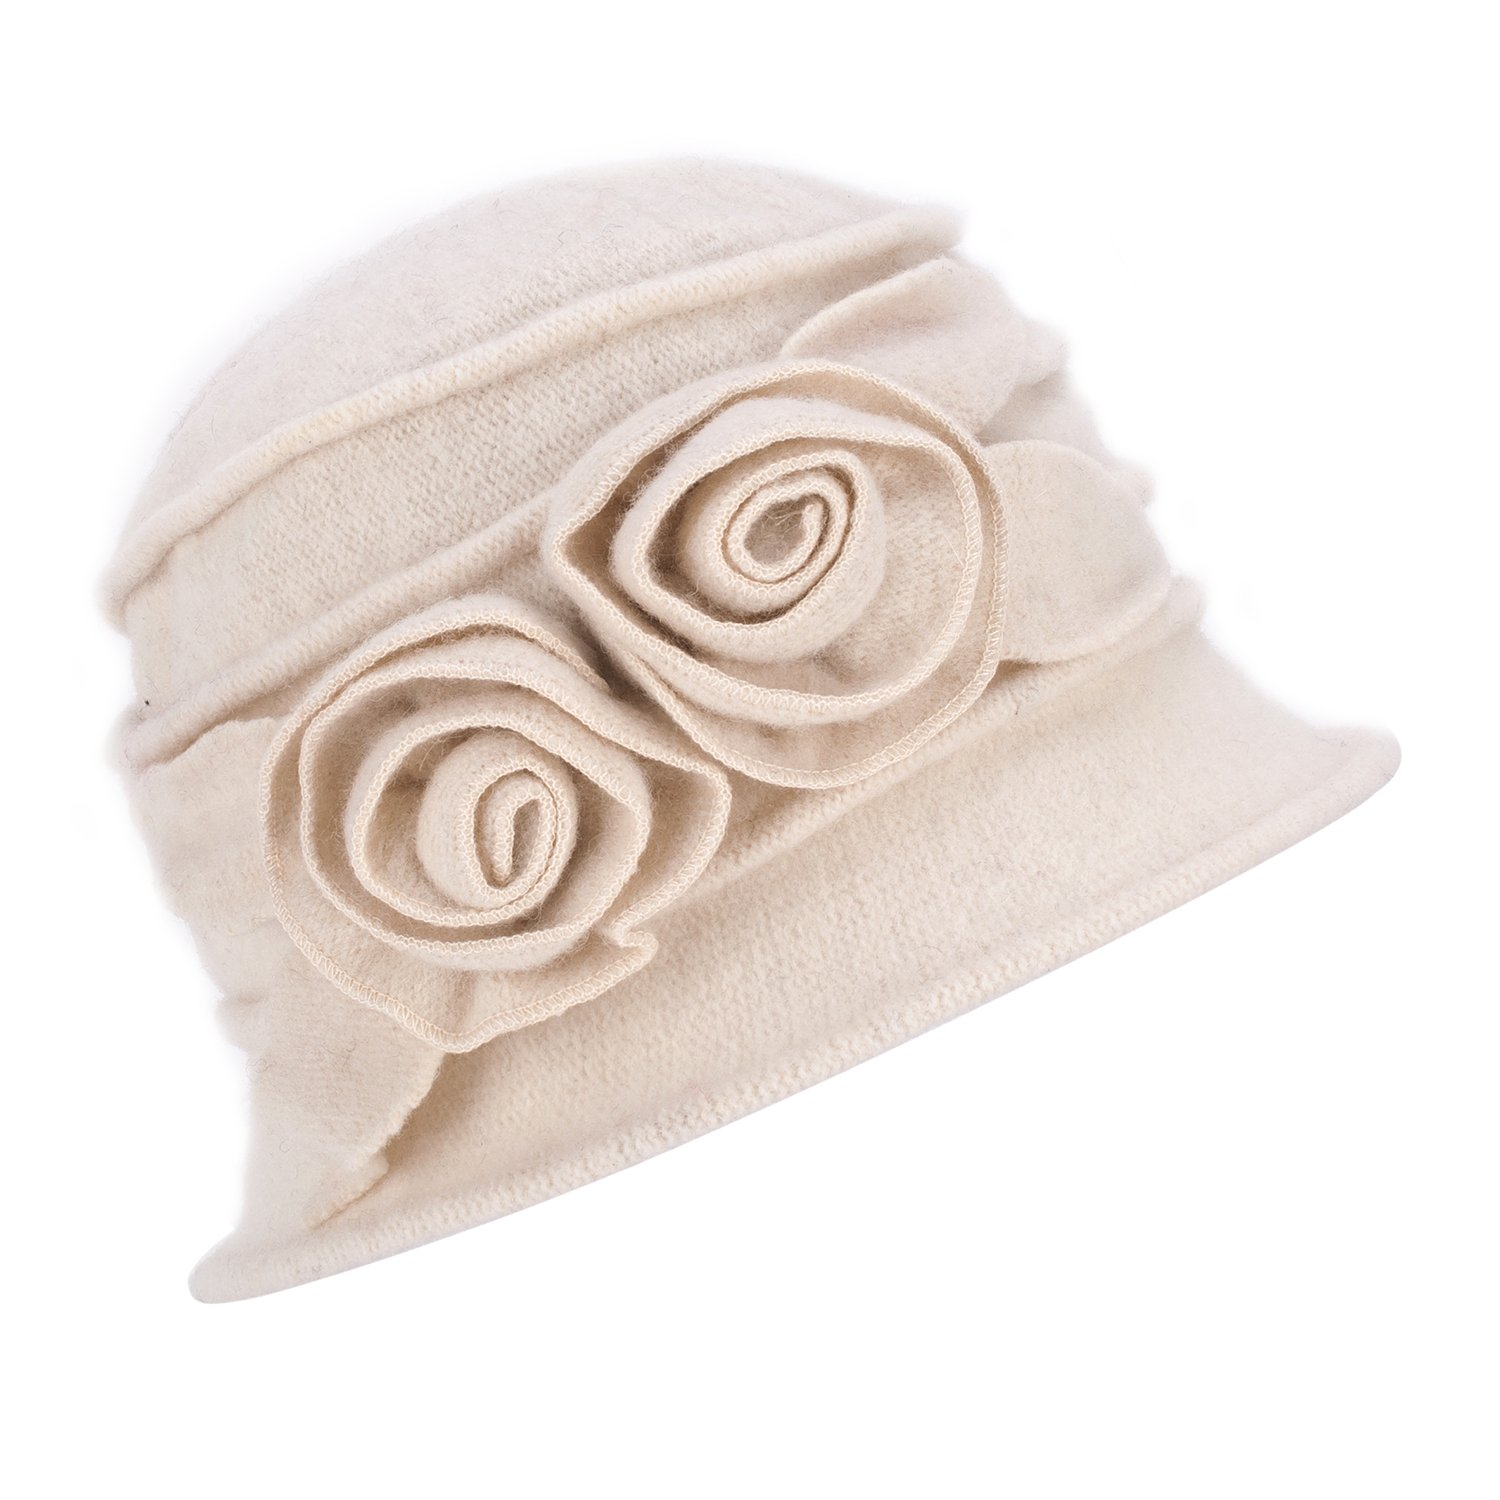 Lawliet 1920s Gatsby Womens Flower Wool Warm Beanie Bow Hat Cap Crushable A287 (White)